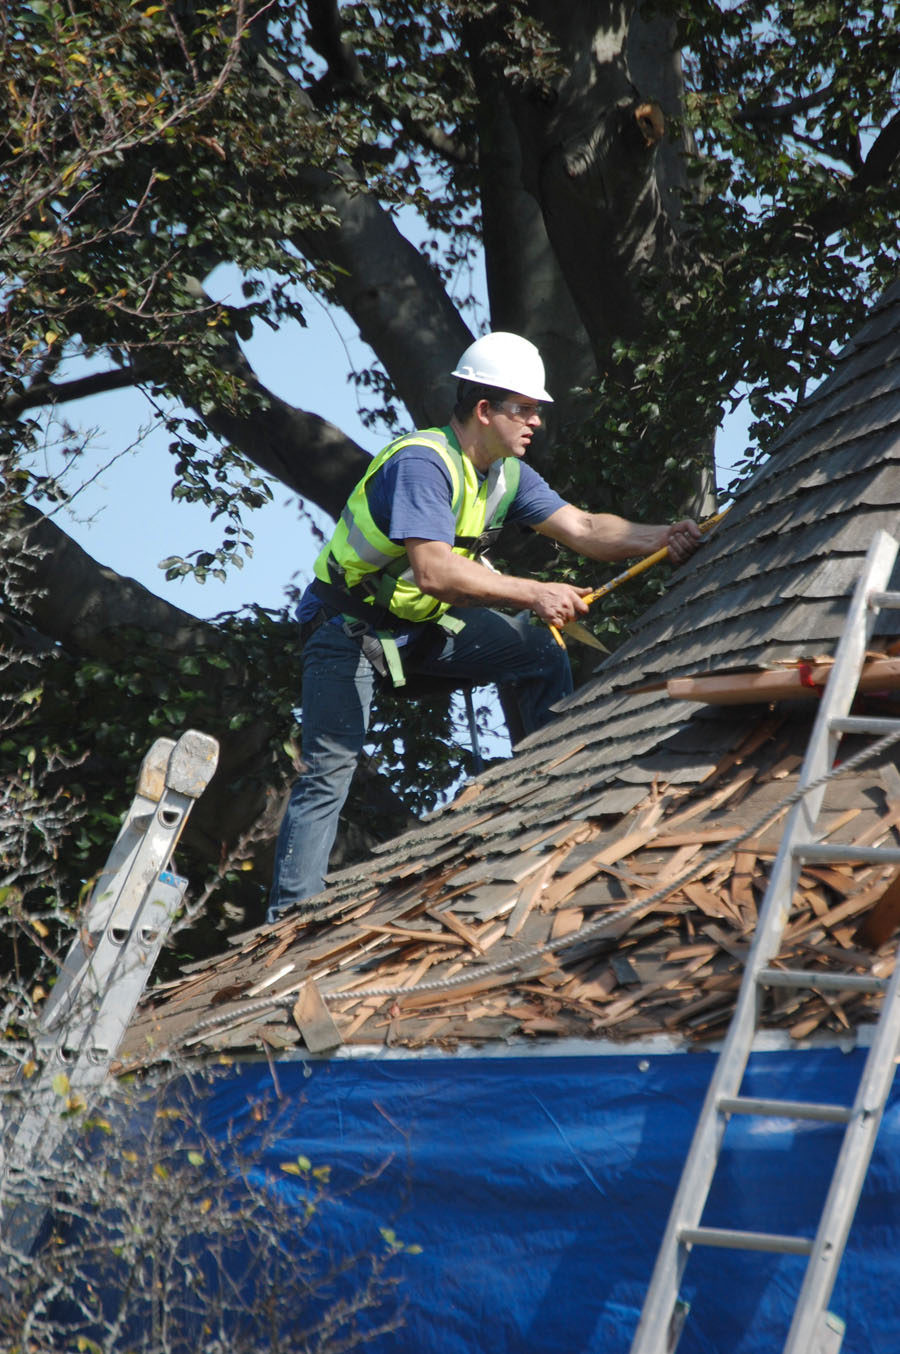 Growing pile of debris from old shingles